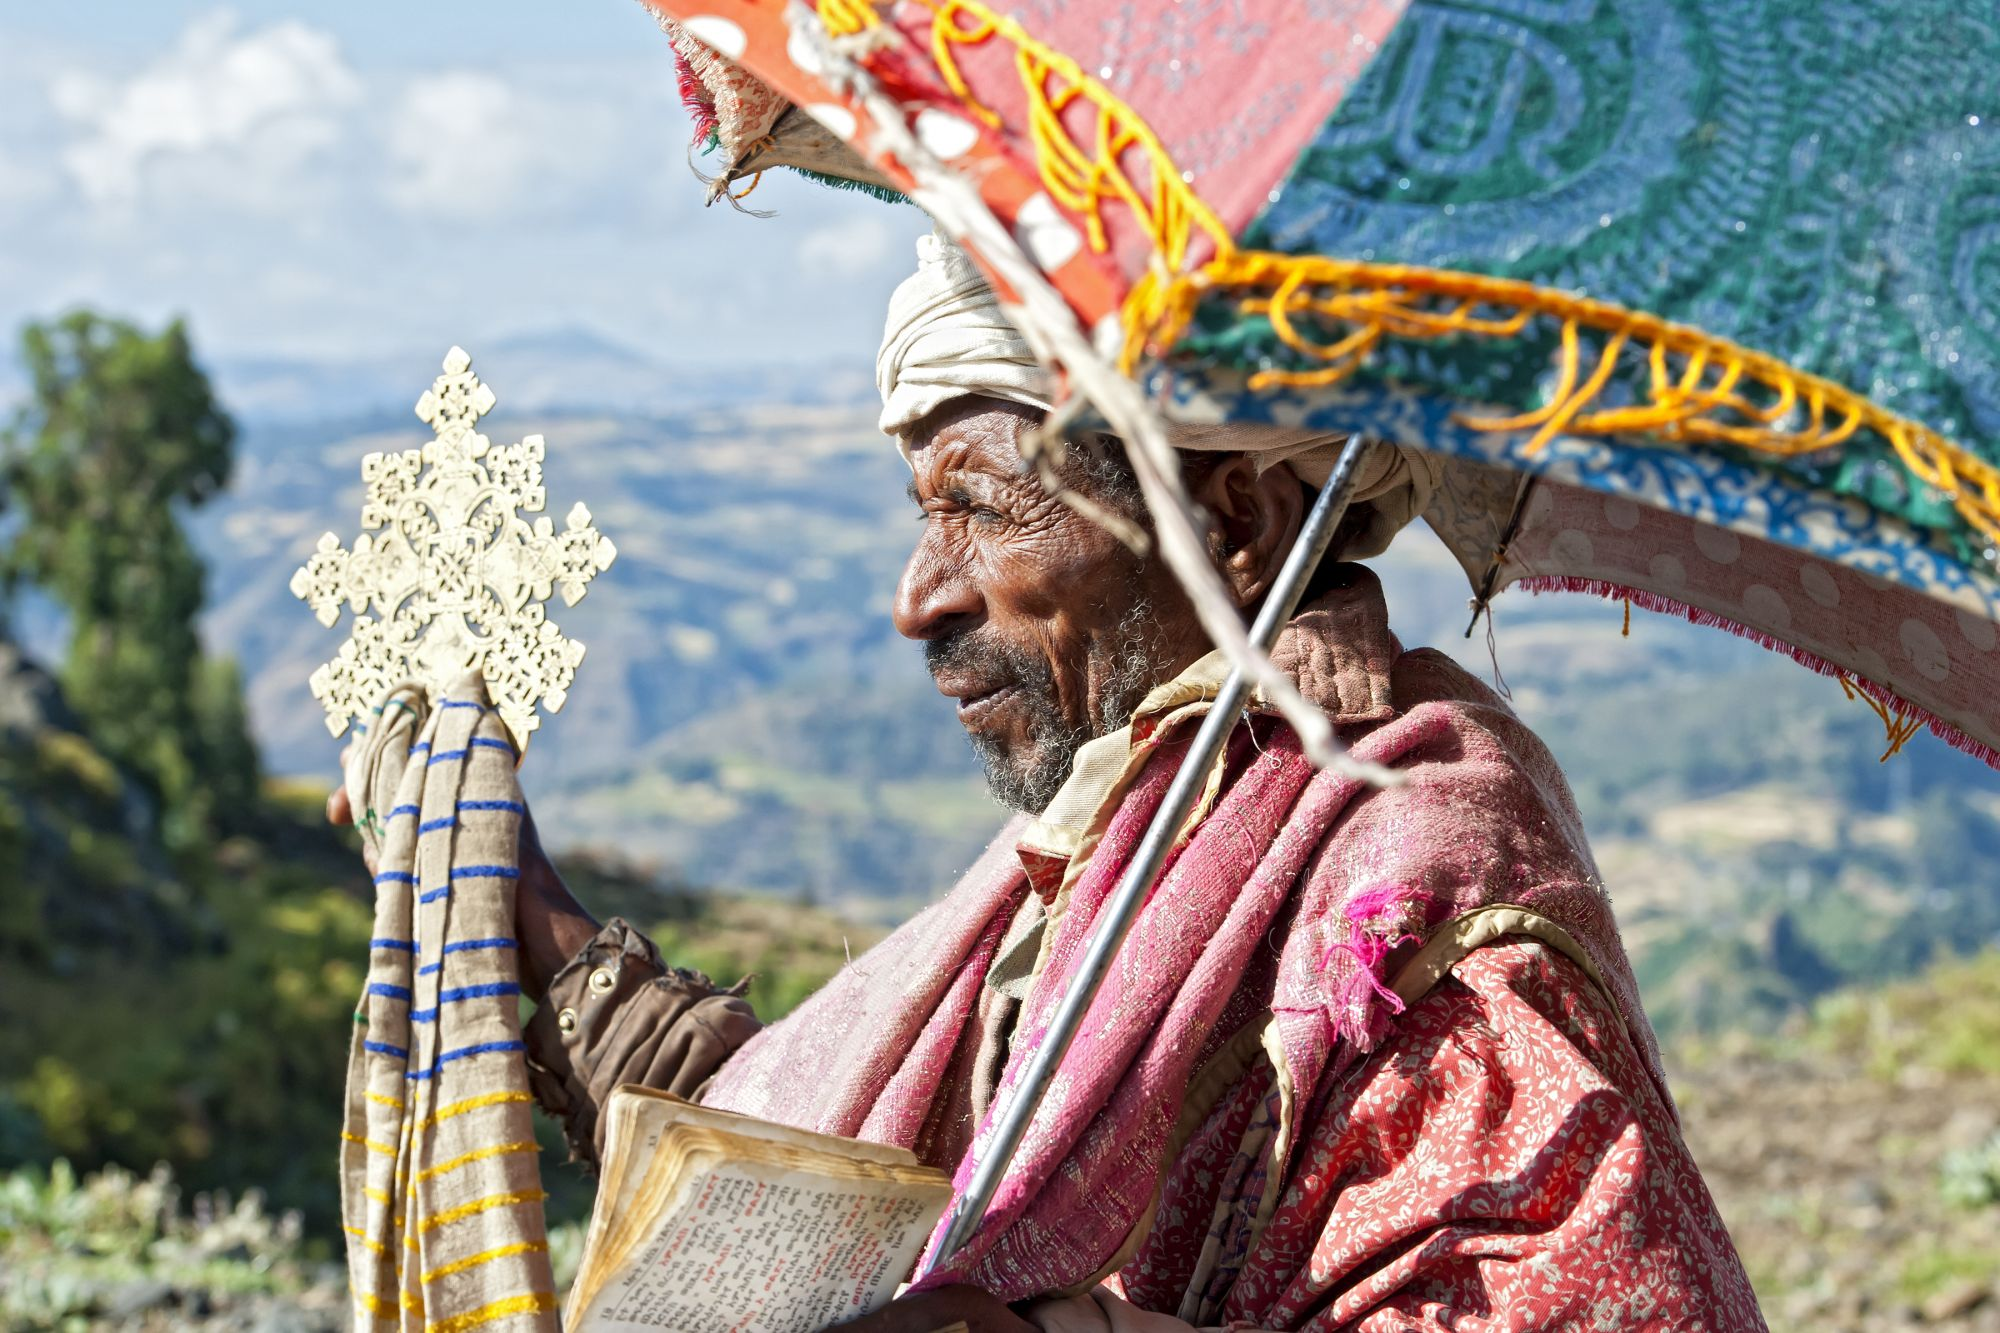 Epic Trips: Uncovering Ancient Rituals And Secrets In Ethiopia